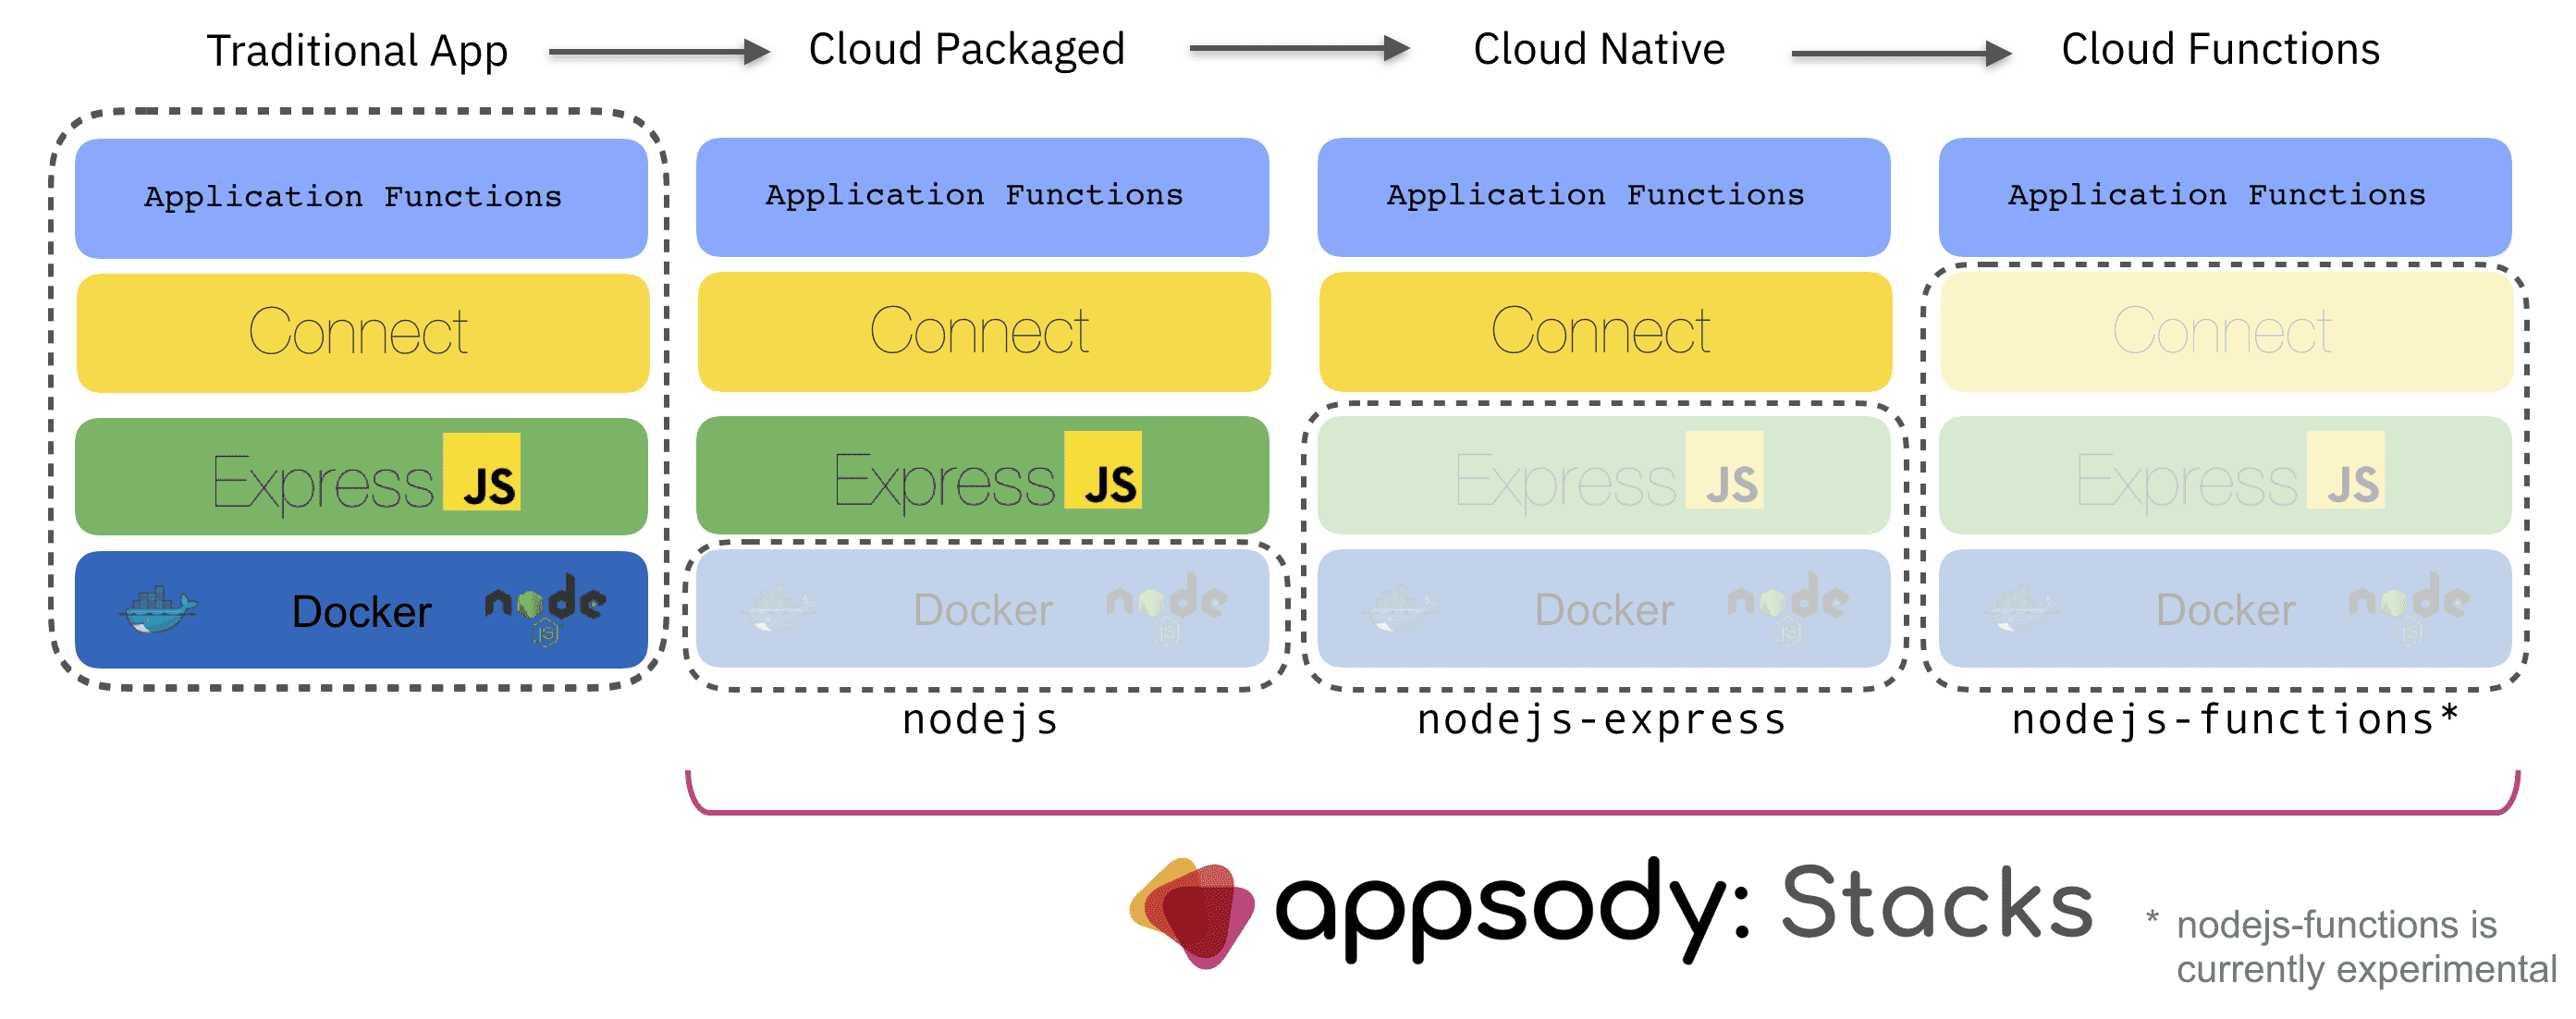 Appsody Stacks for Node.js